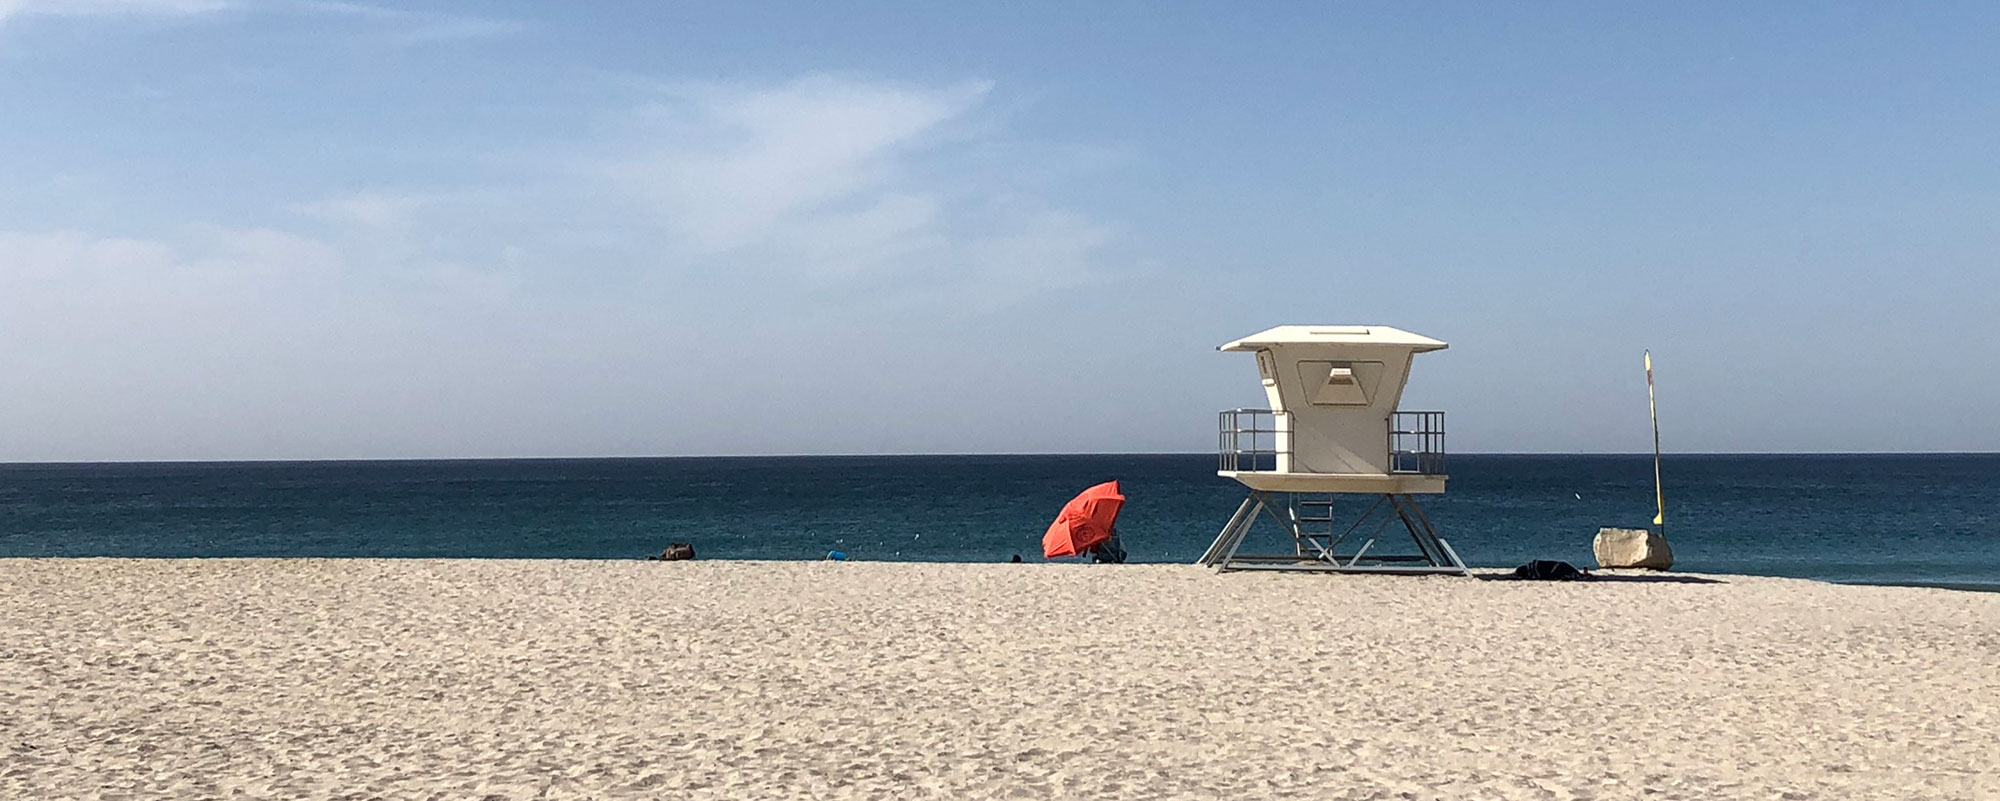 lifeguard tower next to an umbrella on the beach